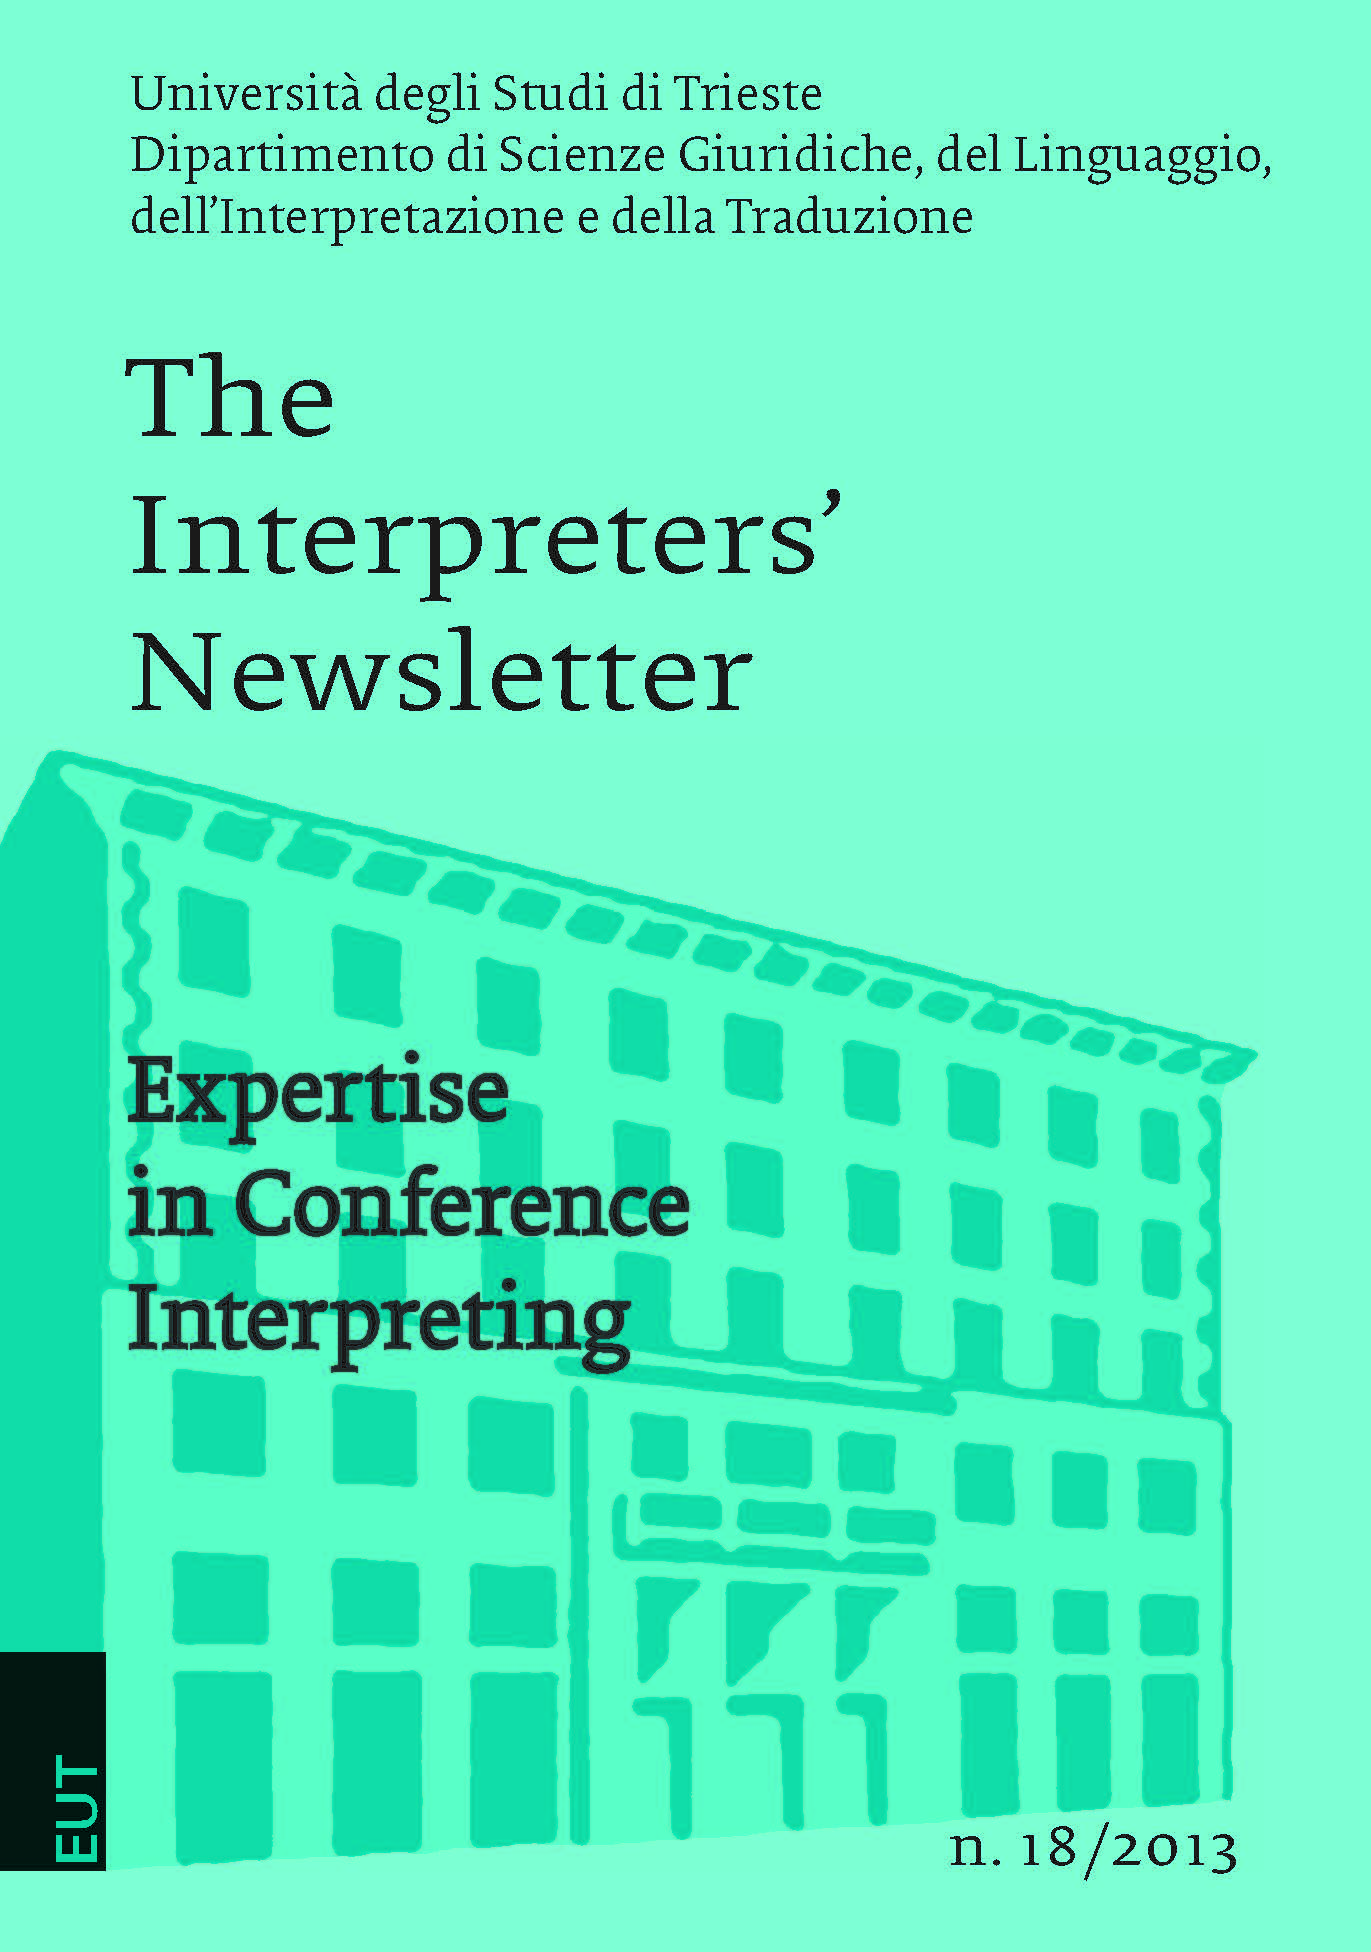 The Interpreters' Newsletter n. 18/2013. Expertise in Conference Interpreting